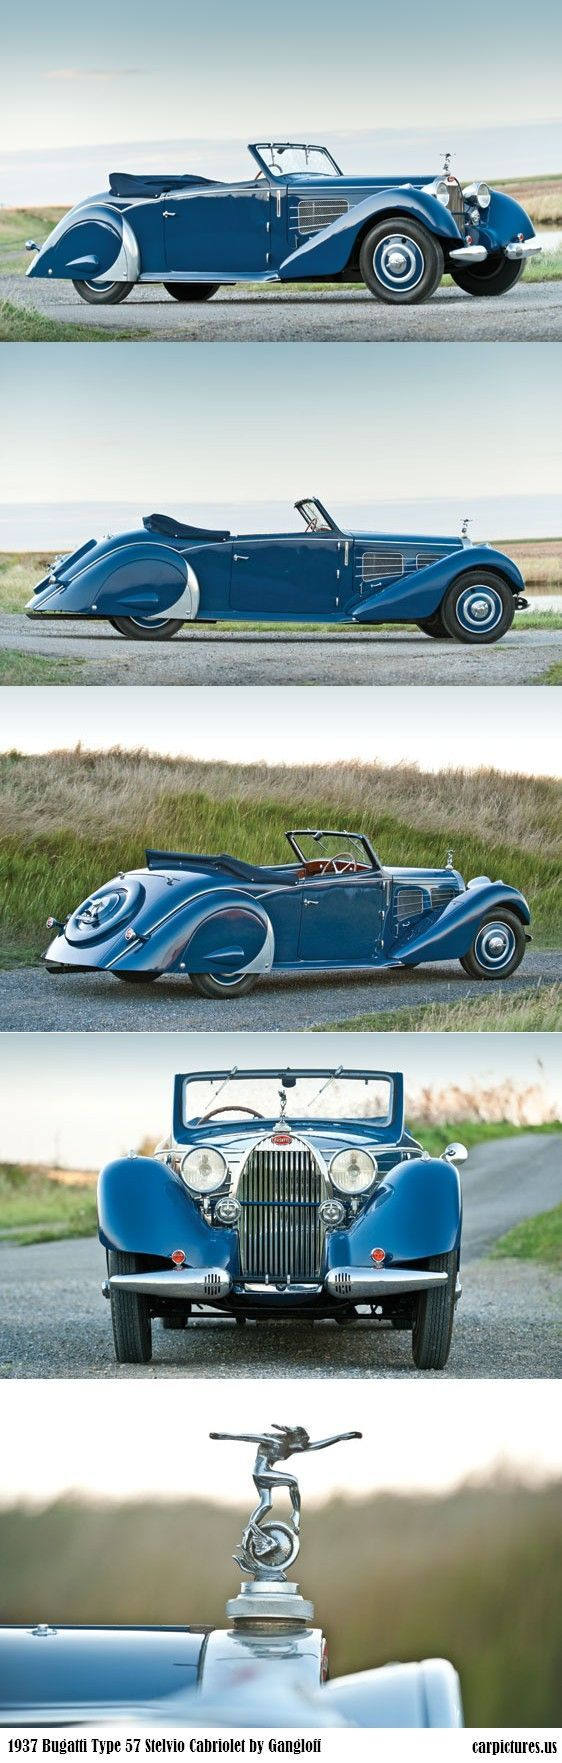 1937 Bugatti Type 57 Stelvio Cabriolet by Gangloff...Special cars need special Insurance coverage that's #affordable...Brought to you by #HouseofInsurance #EugeneOregon